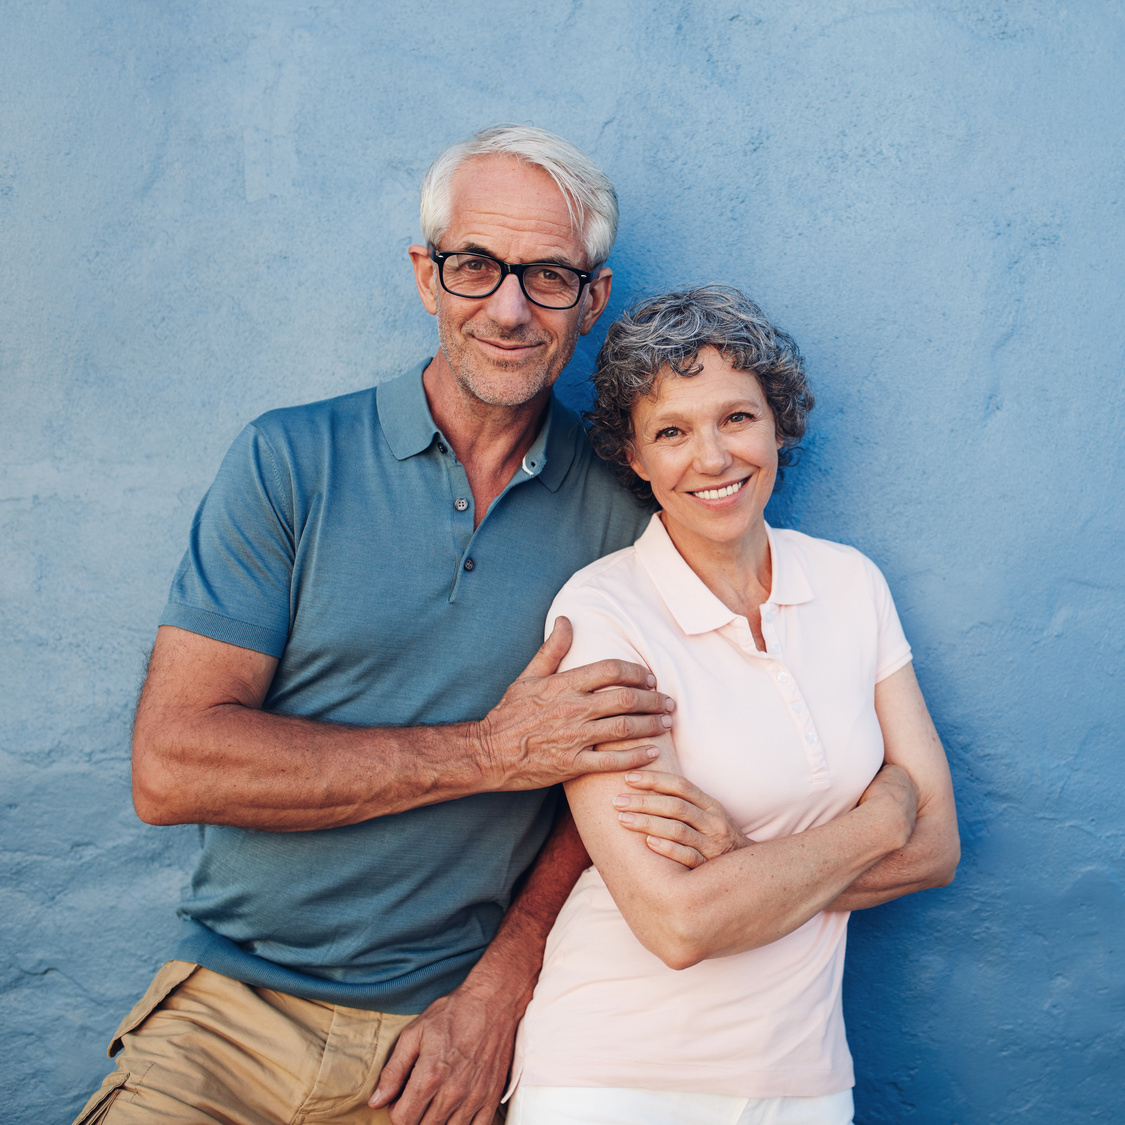 Portrait of happy mature couple standing together against blue wall. Middle aged man and woman looking at camera and smiling on blue background